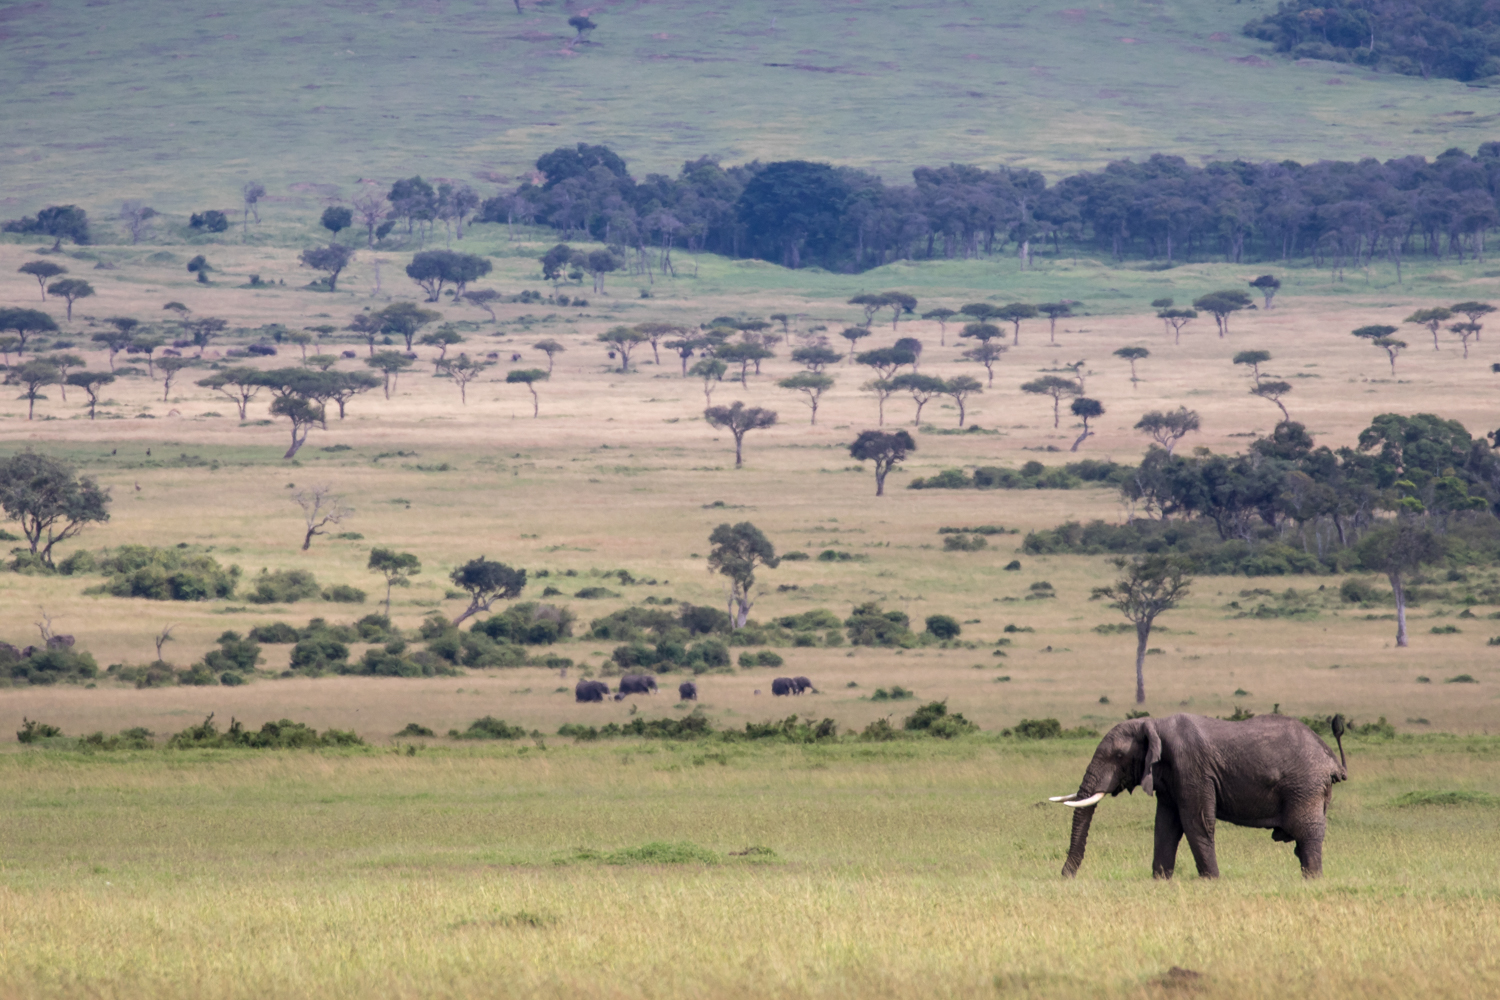 Elephant in front of Escarpment